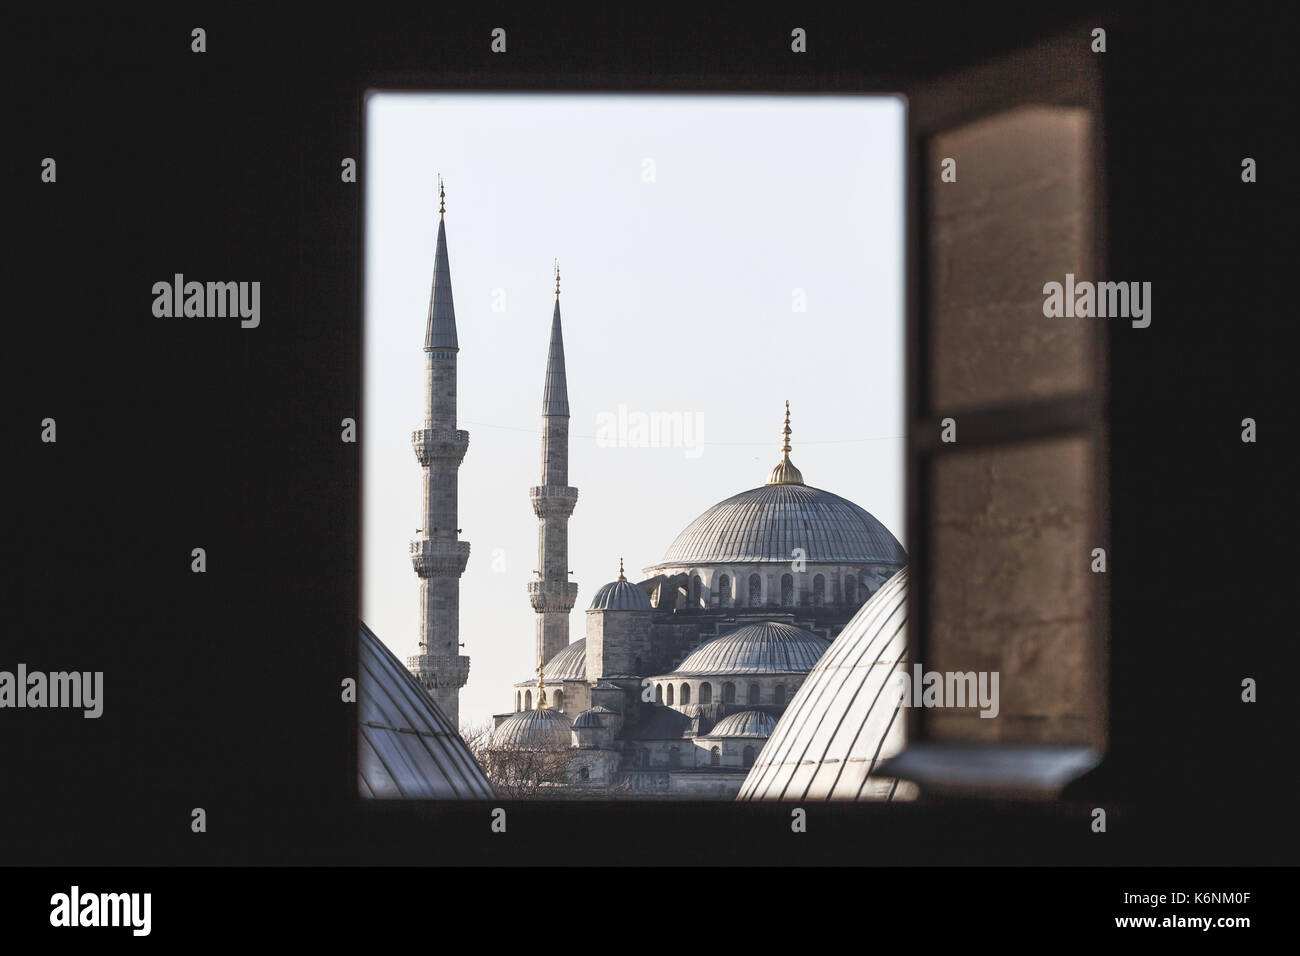 View of the Blue Mosque through the windows Hagia Sophia - Stock Image